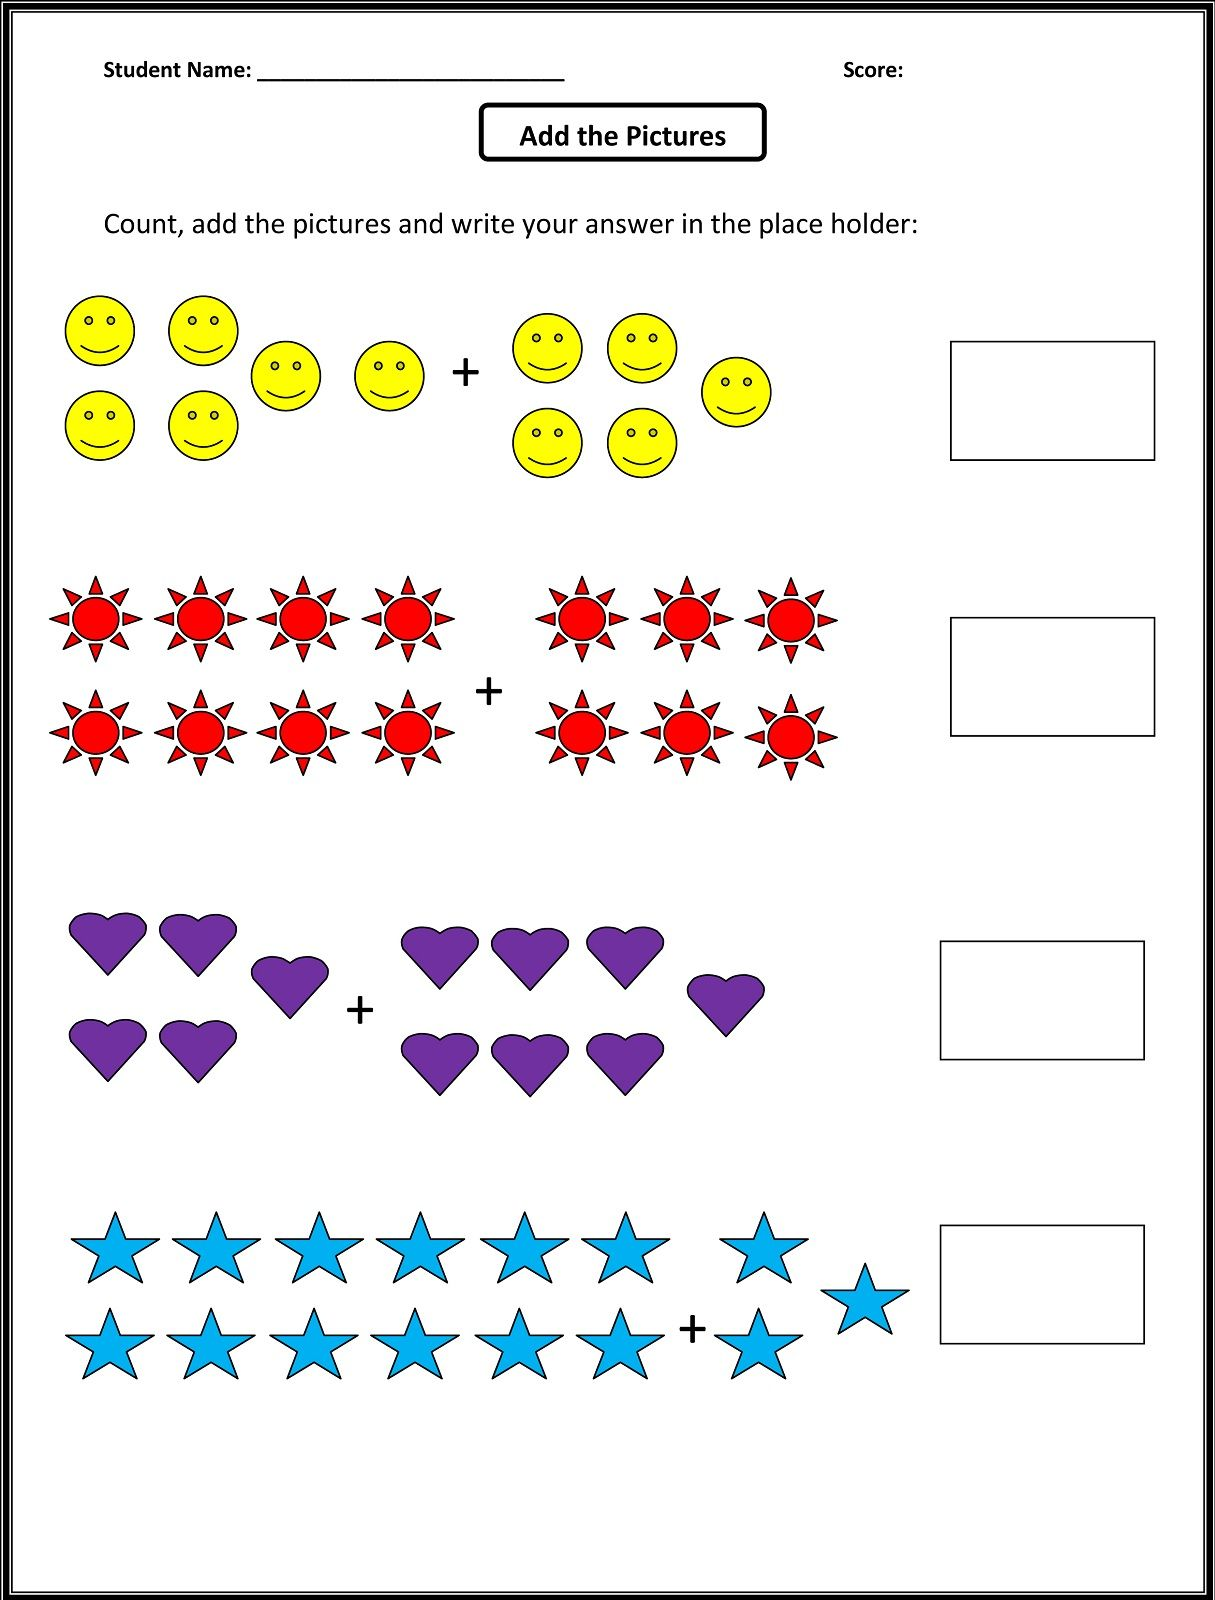 Worksheets Math Worksheets For 1st Graders worksheets for 1st grade math activity shelter kids shelter